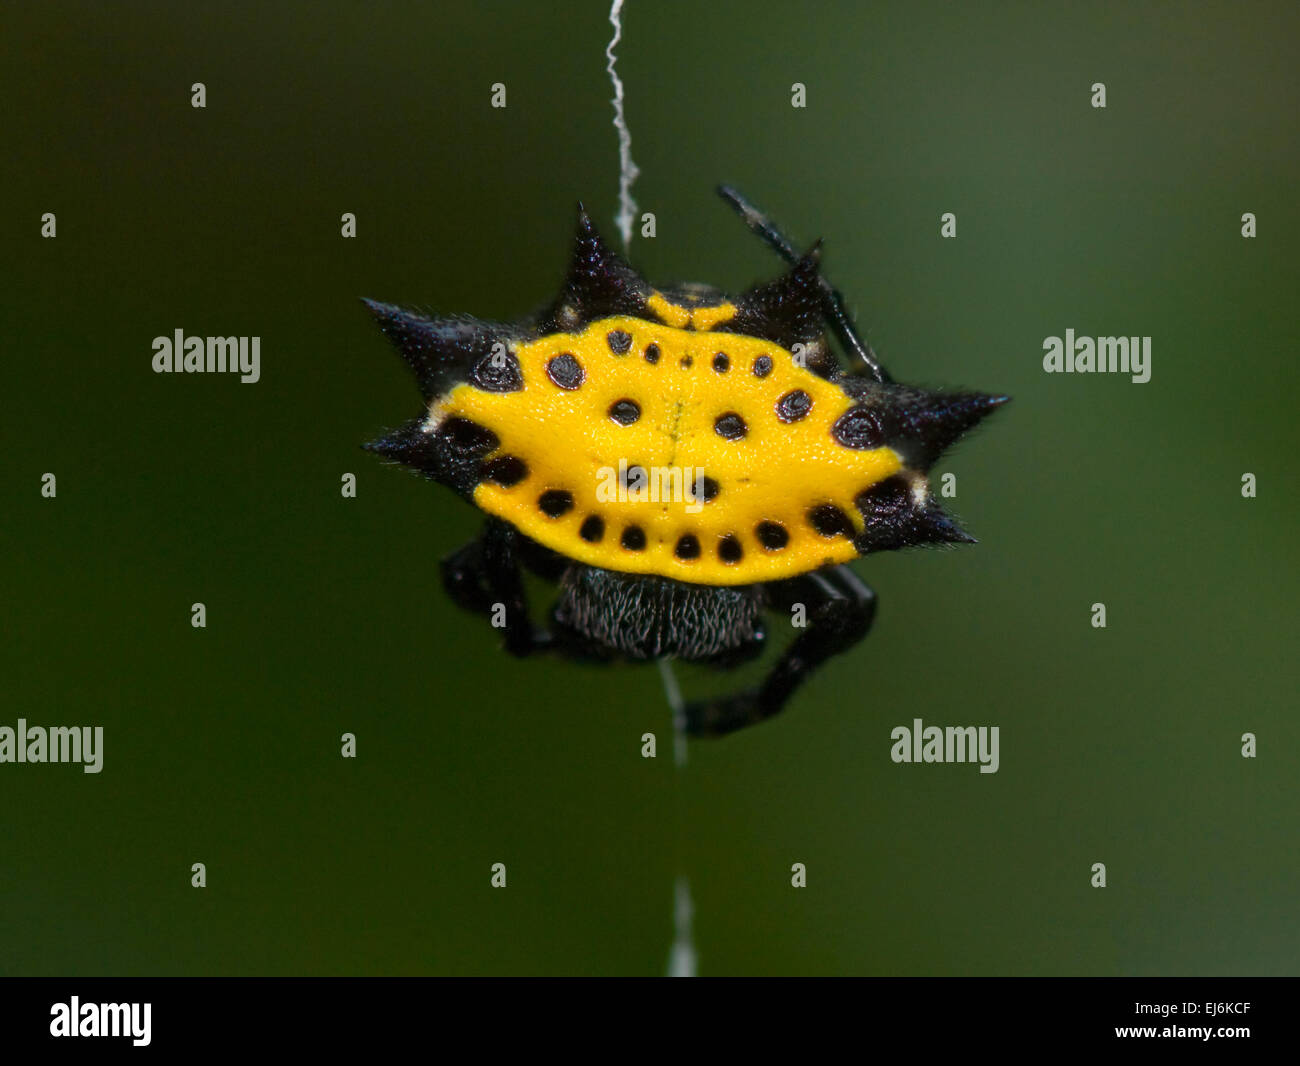 crablike-spiny-orb-weaver-gasteracantha-